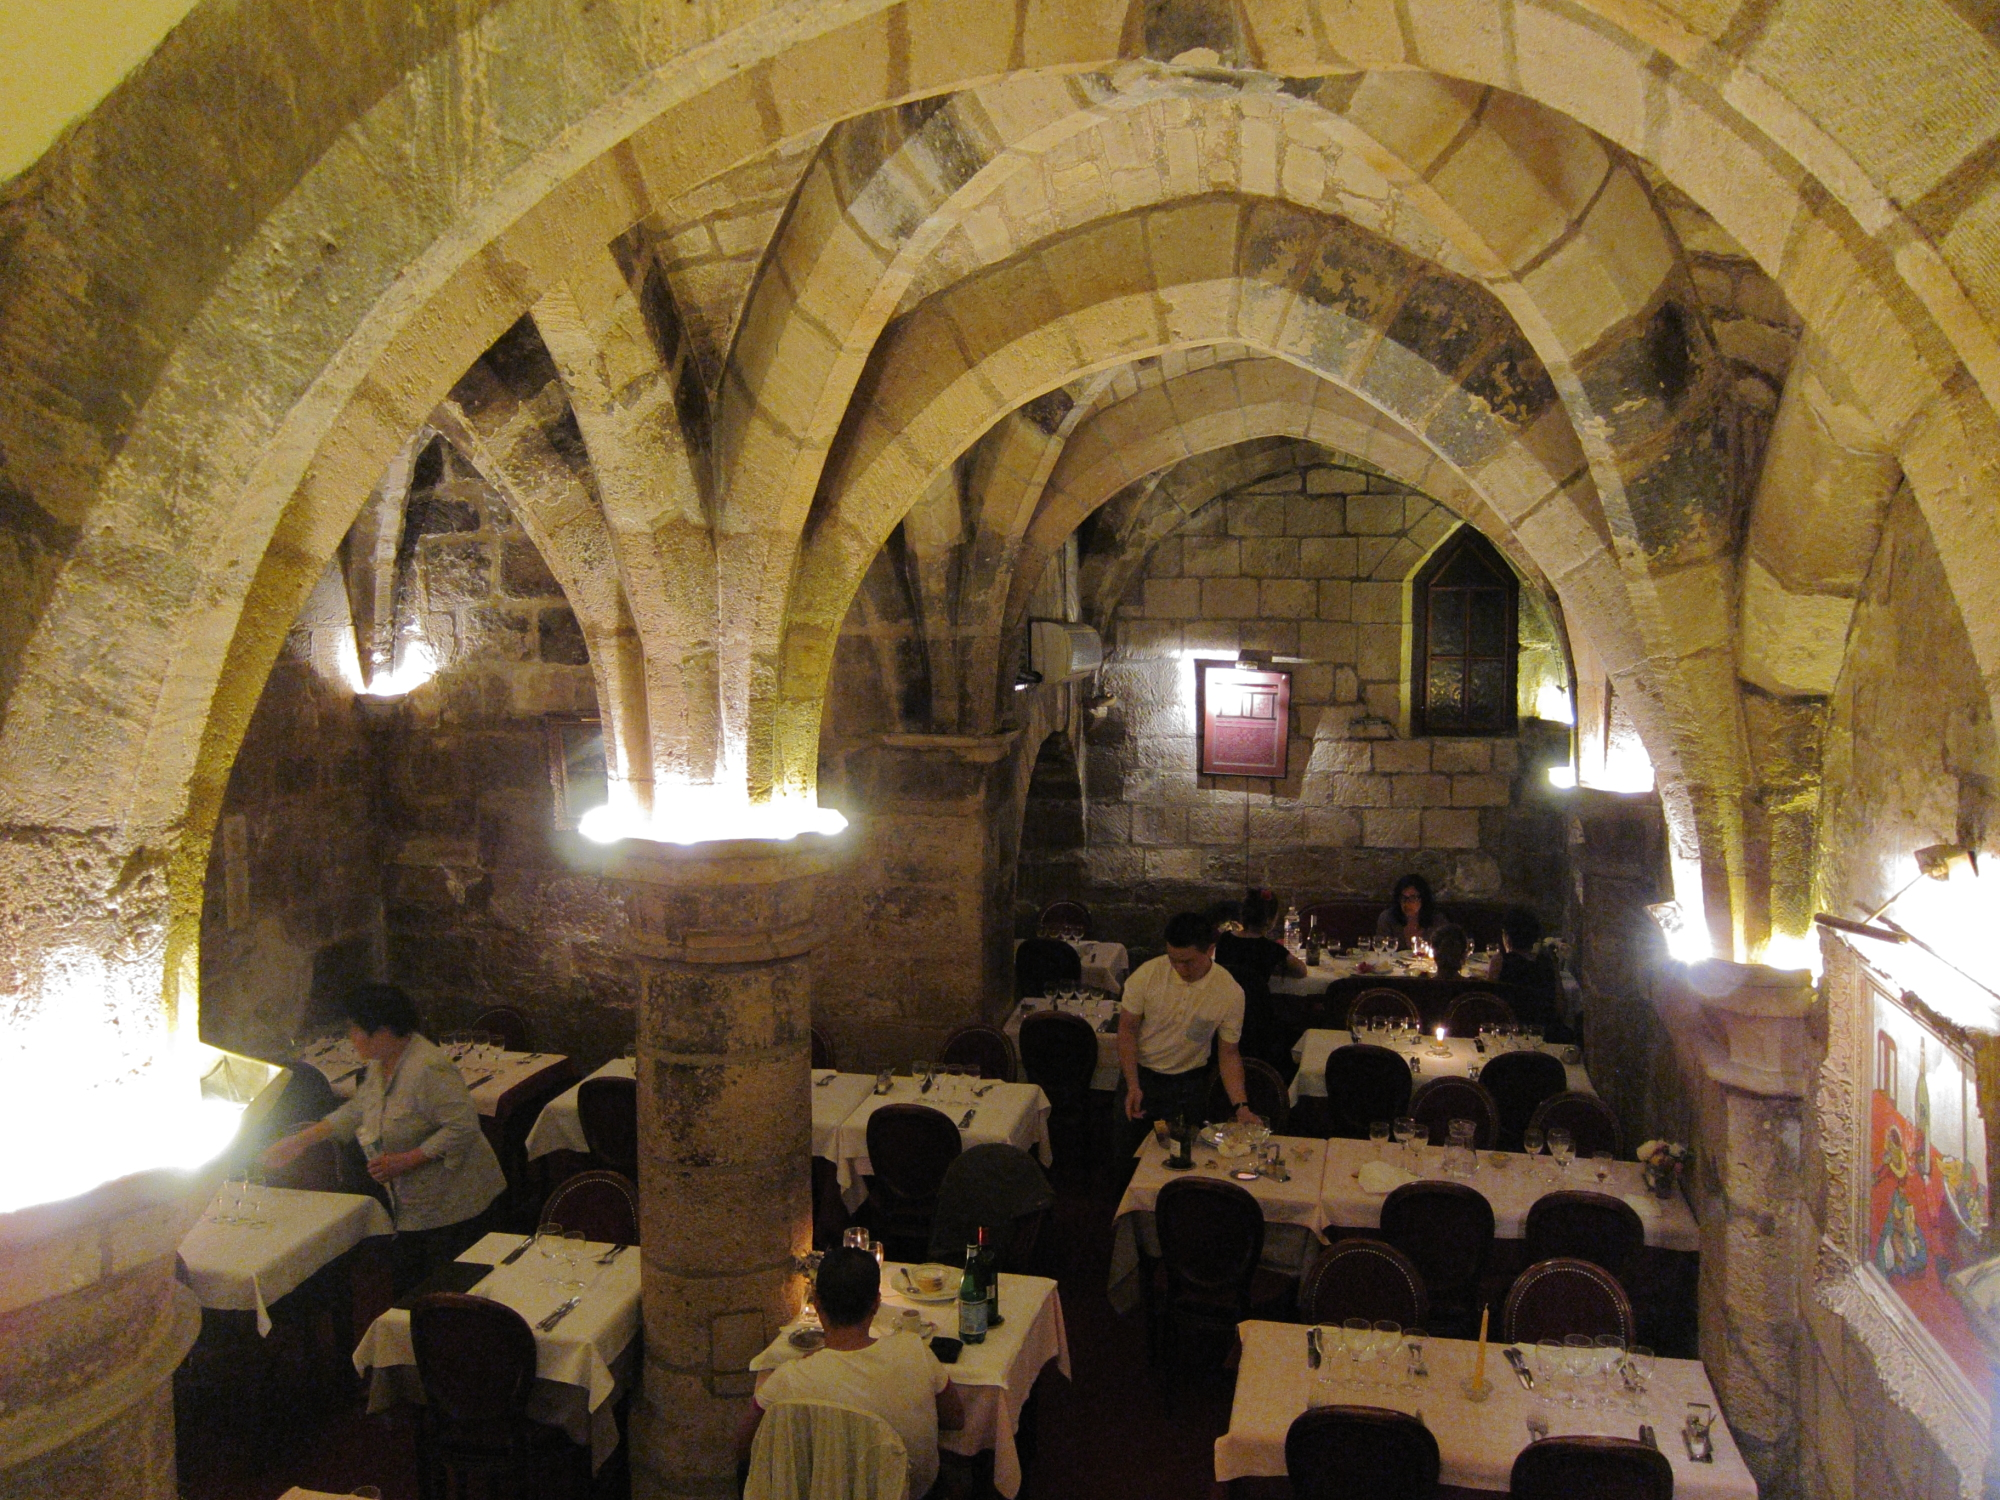 The astonishing dining room of La Table des Gourmets in the Marais was a 12th century chapel.